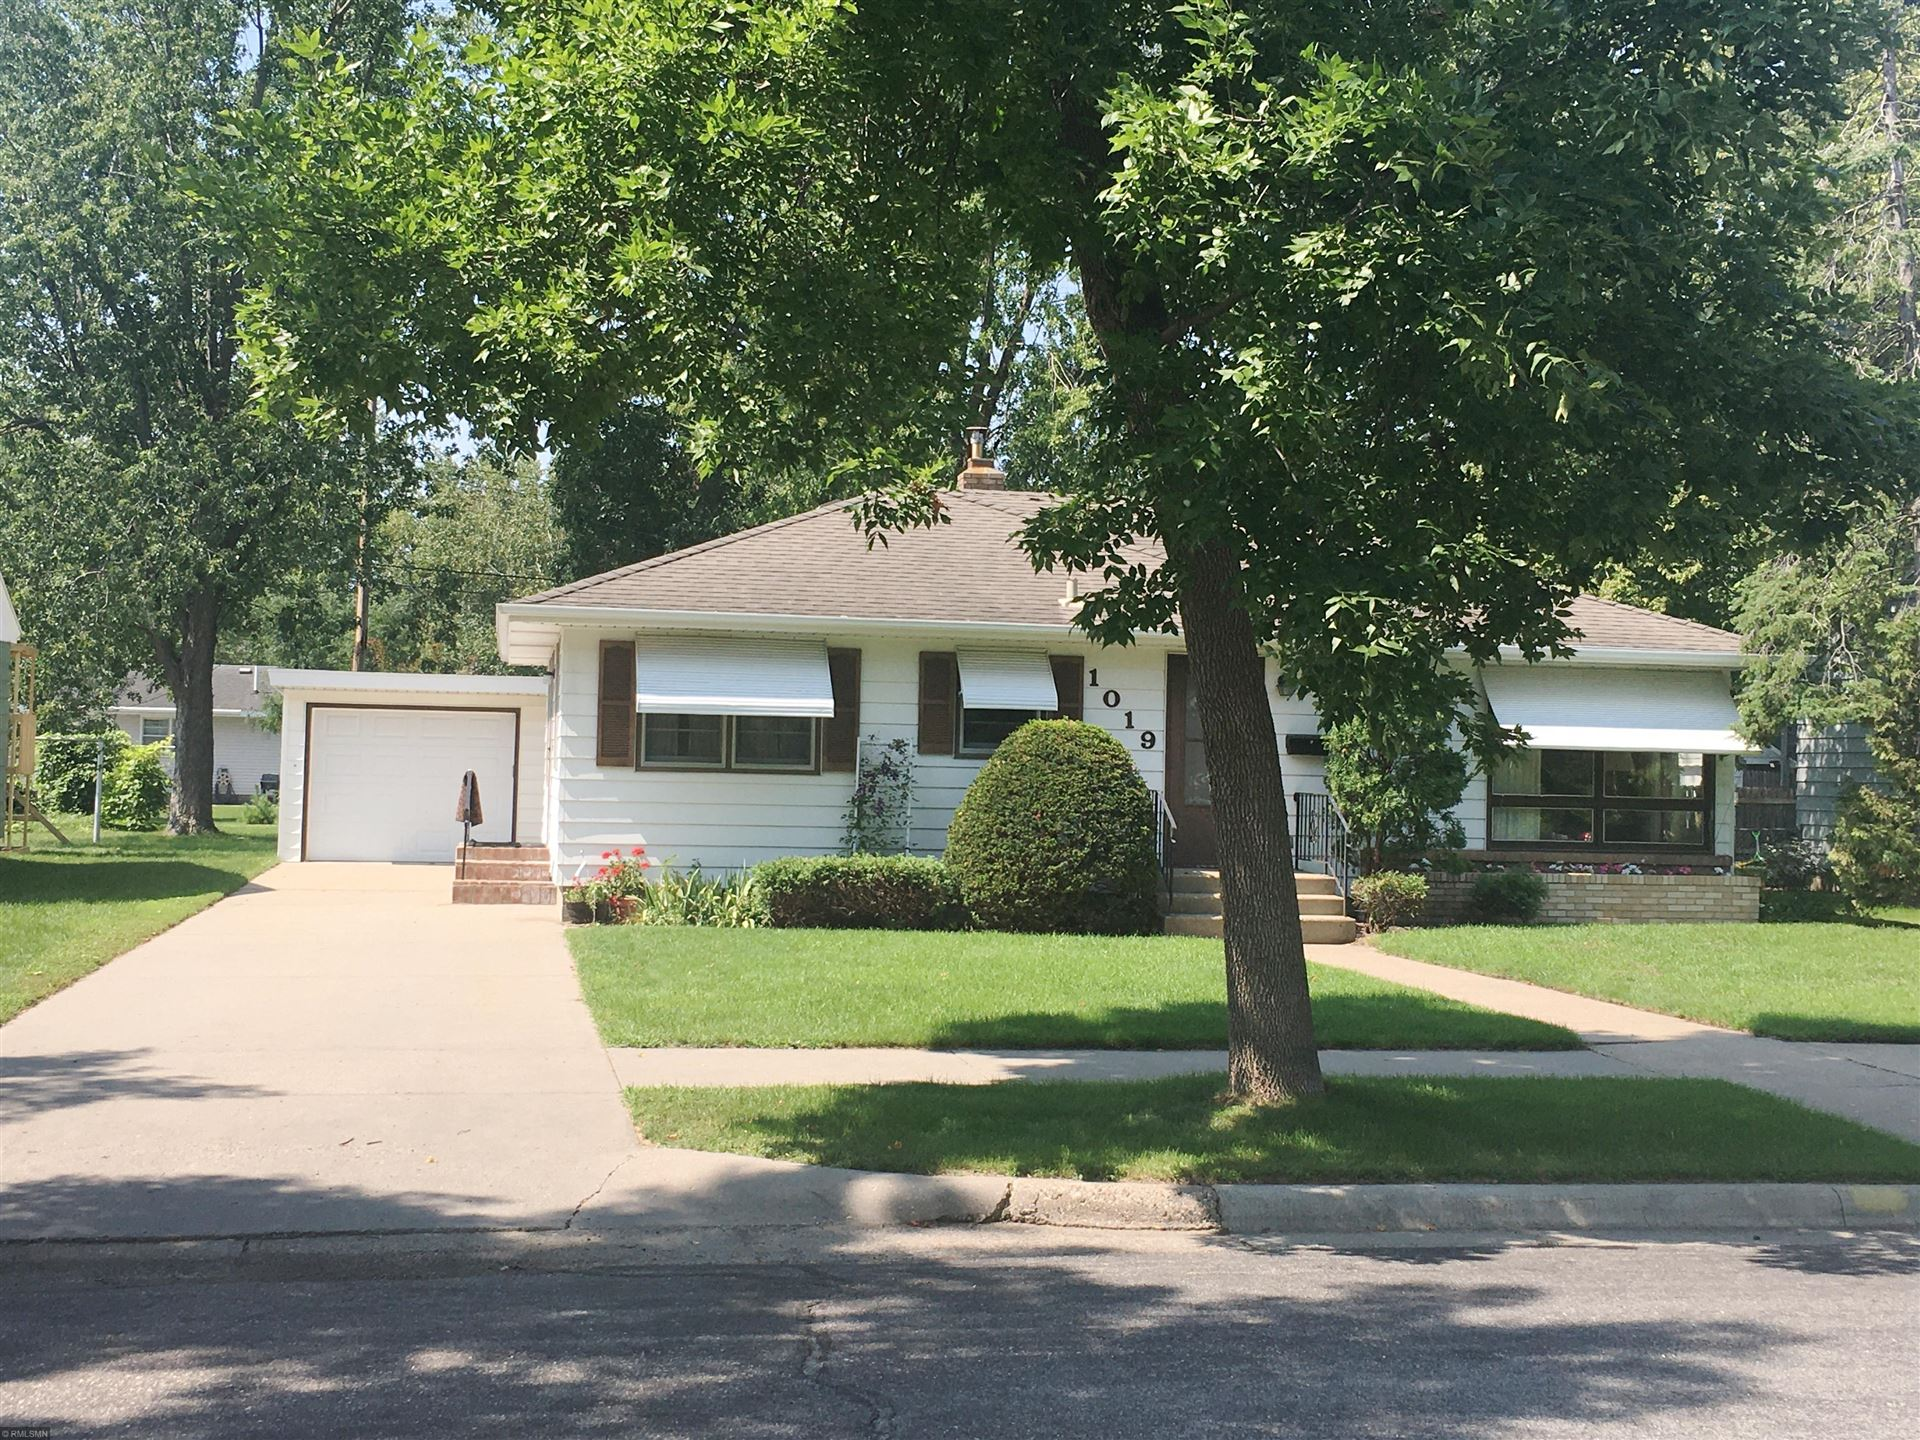 1019 27th Avenue N, Saint Cloud, MN 56303 - MLS#: 5659742